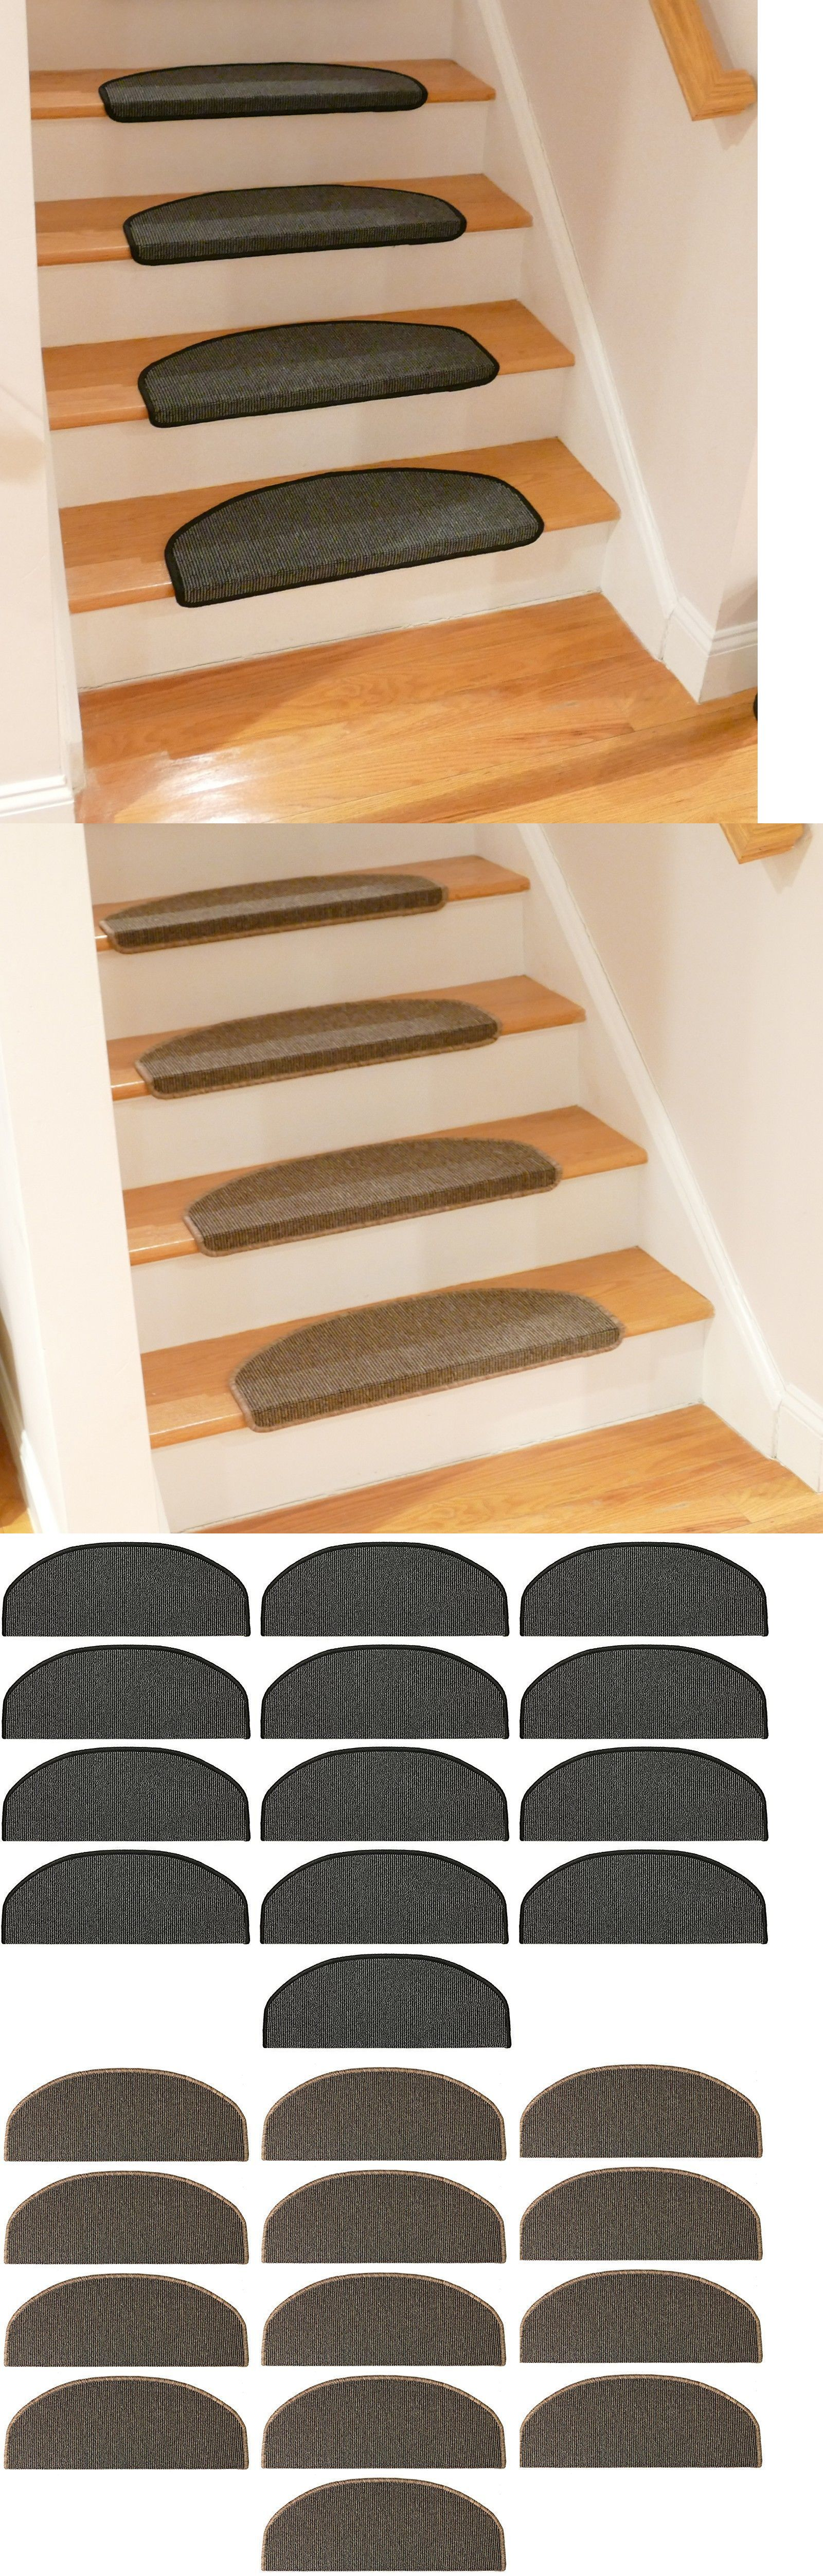 Best Details About Affordable Bullnose Carpet Stair Treads Non 640 x 480